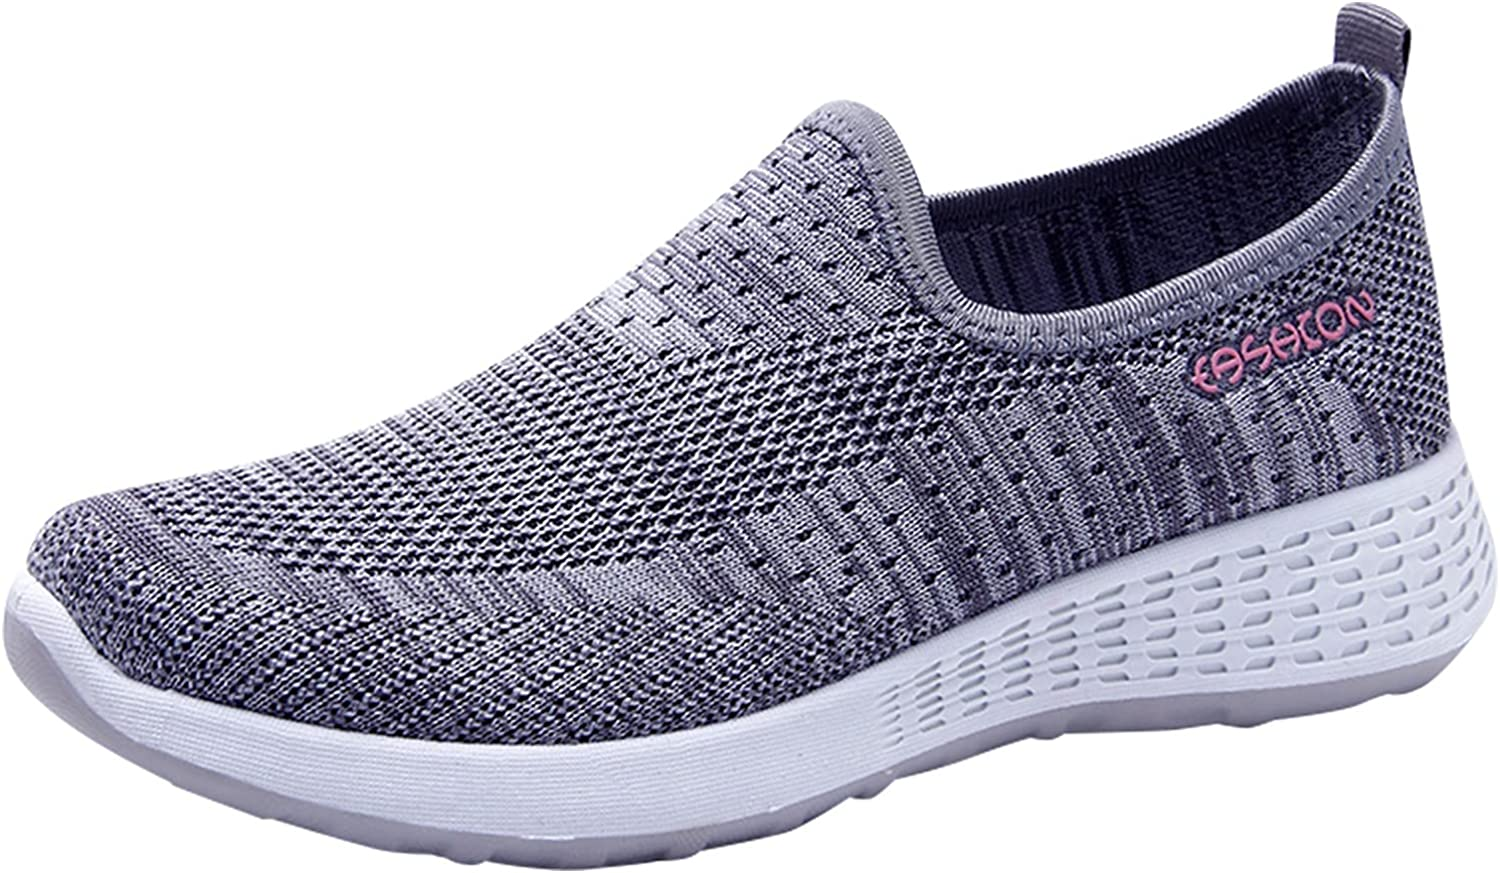 USYFAKGH Women's Walking Shoes Sock Sneakers Slip on Mesh Air Cushion Comfortable Wedge Easy Shoes Platform Loafers